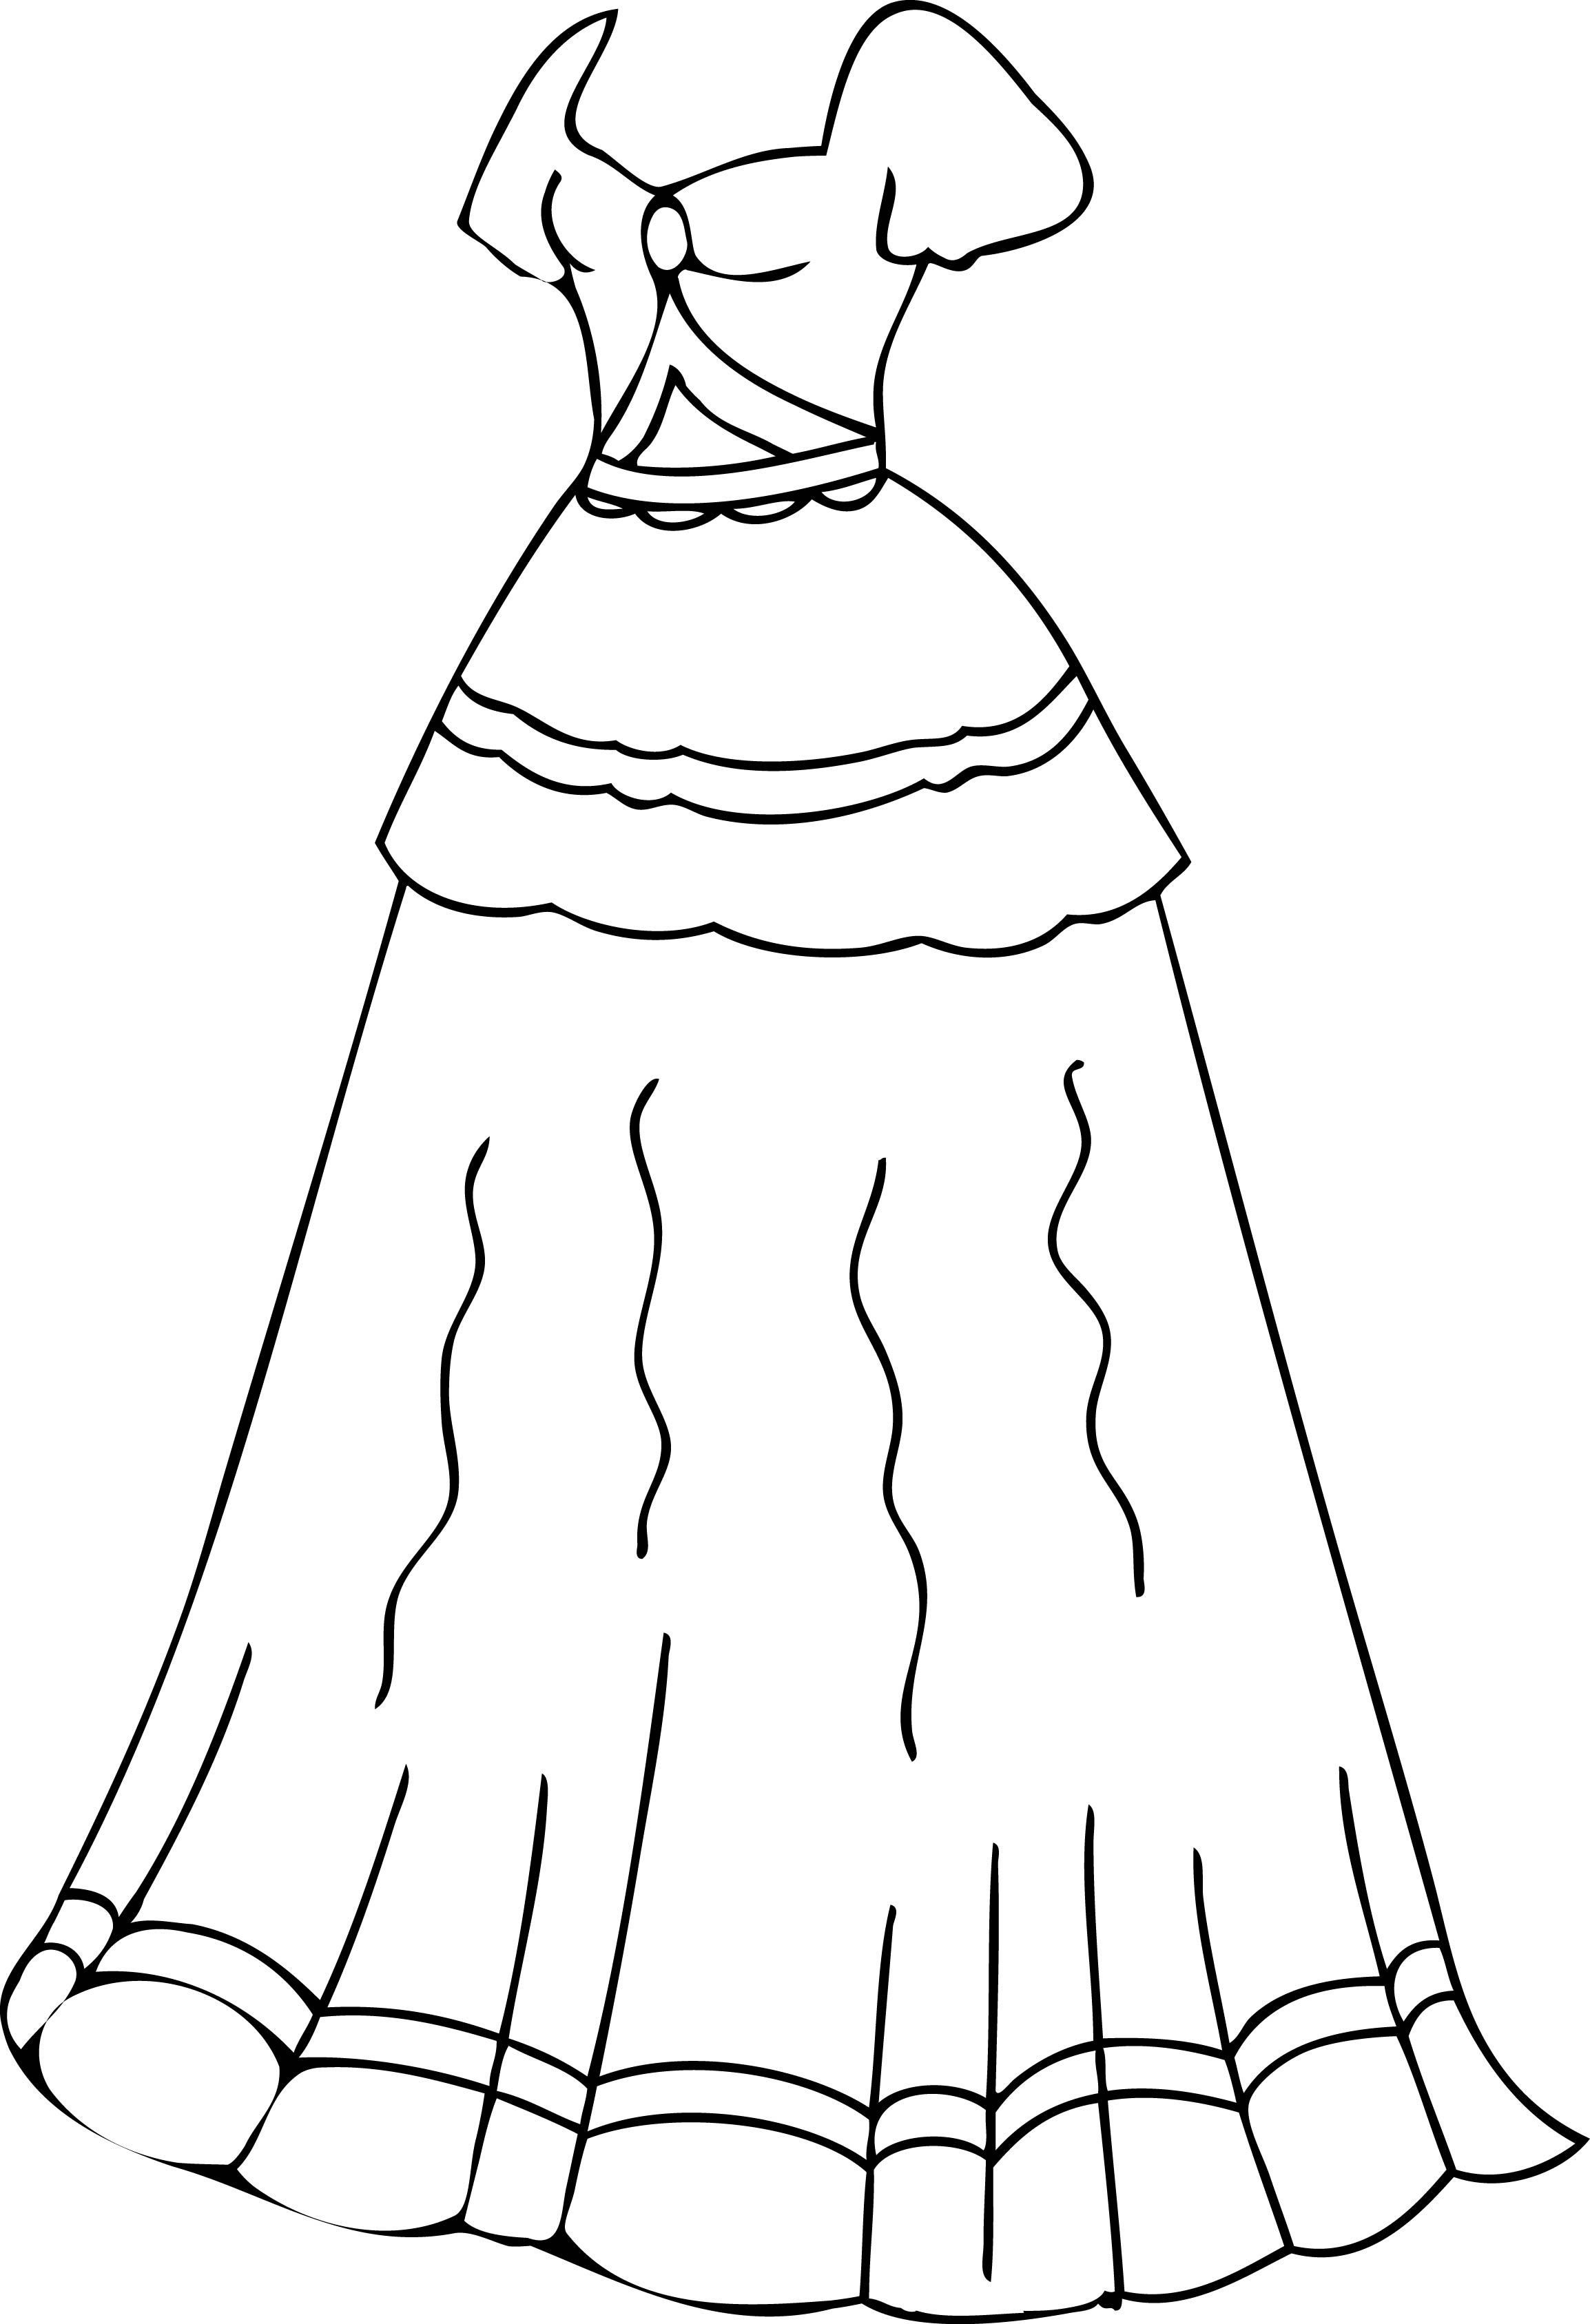 world coloring pages - dress coloring page